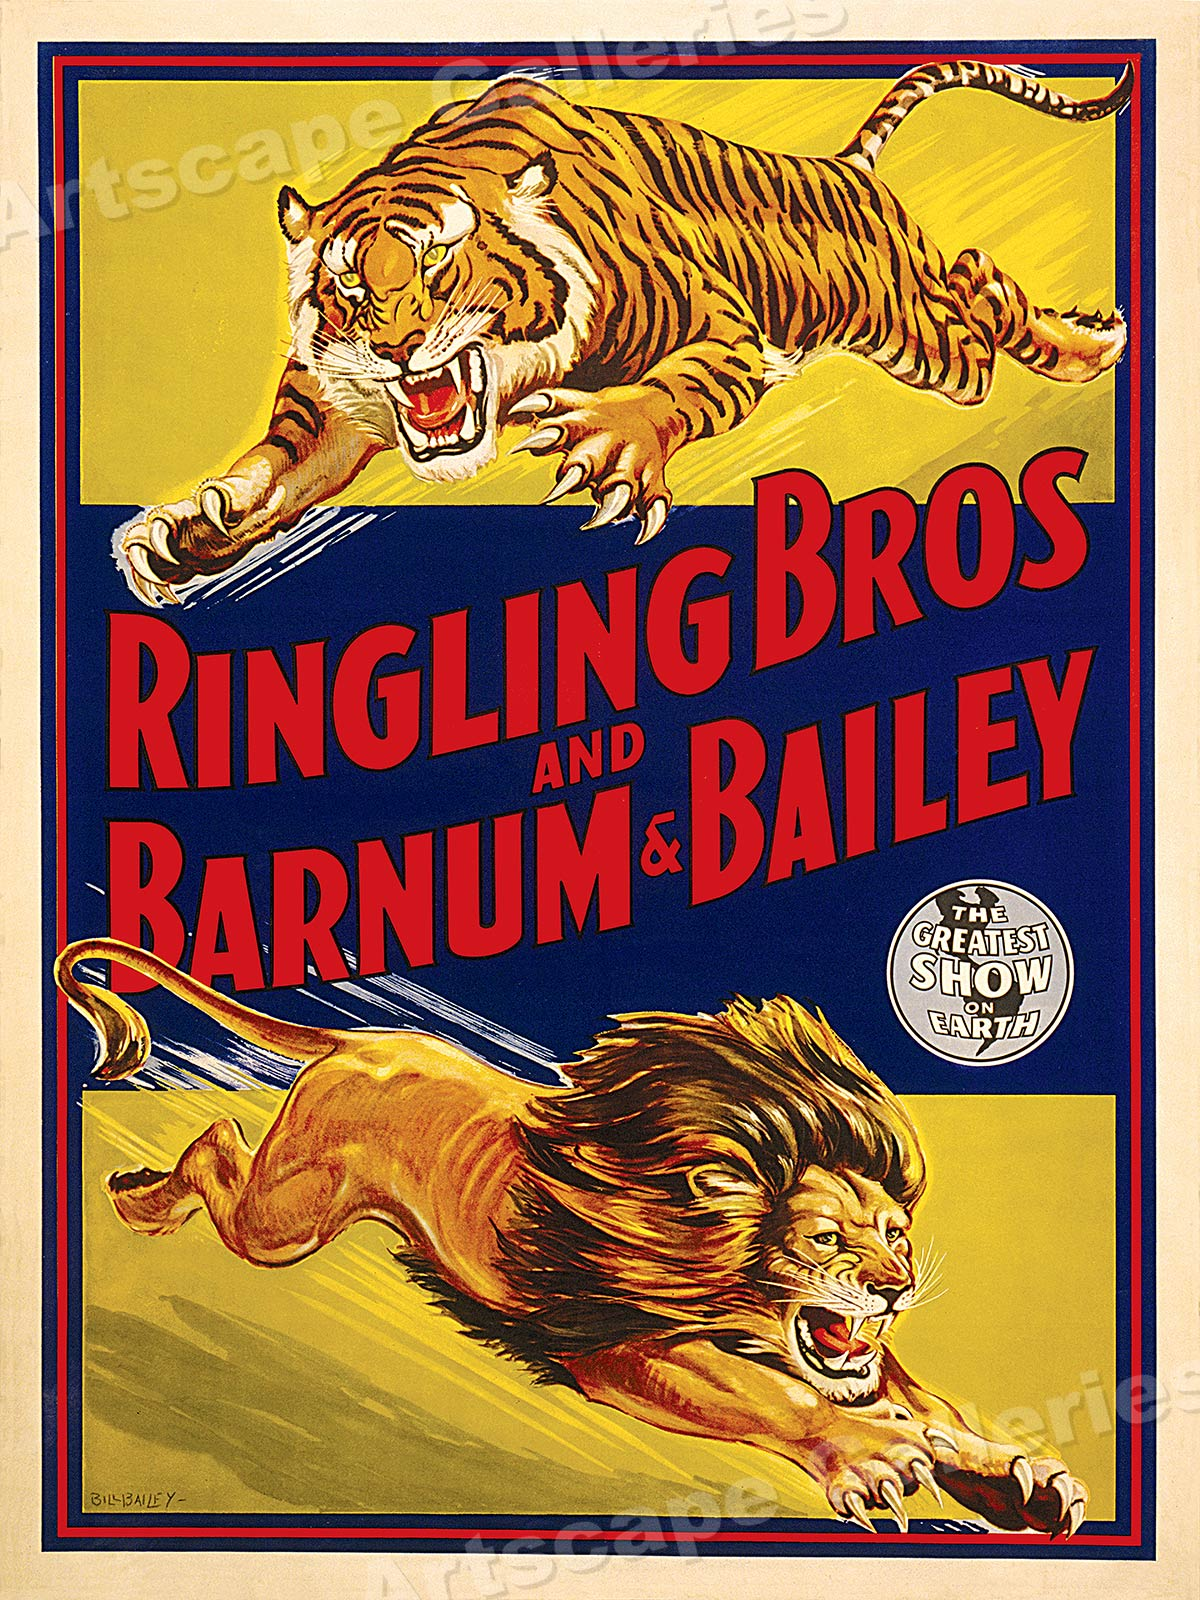 1940s Ringling Barnum /& Bailey Lion /& Tiger Circus Poster 24x32